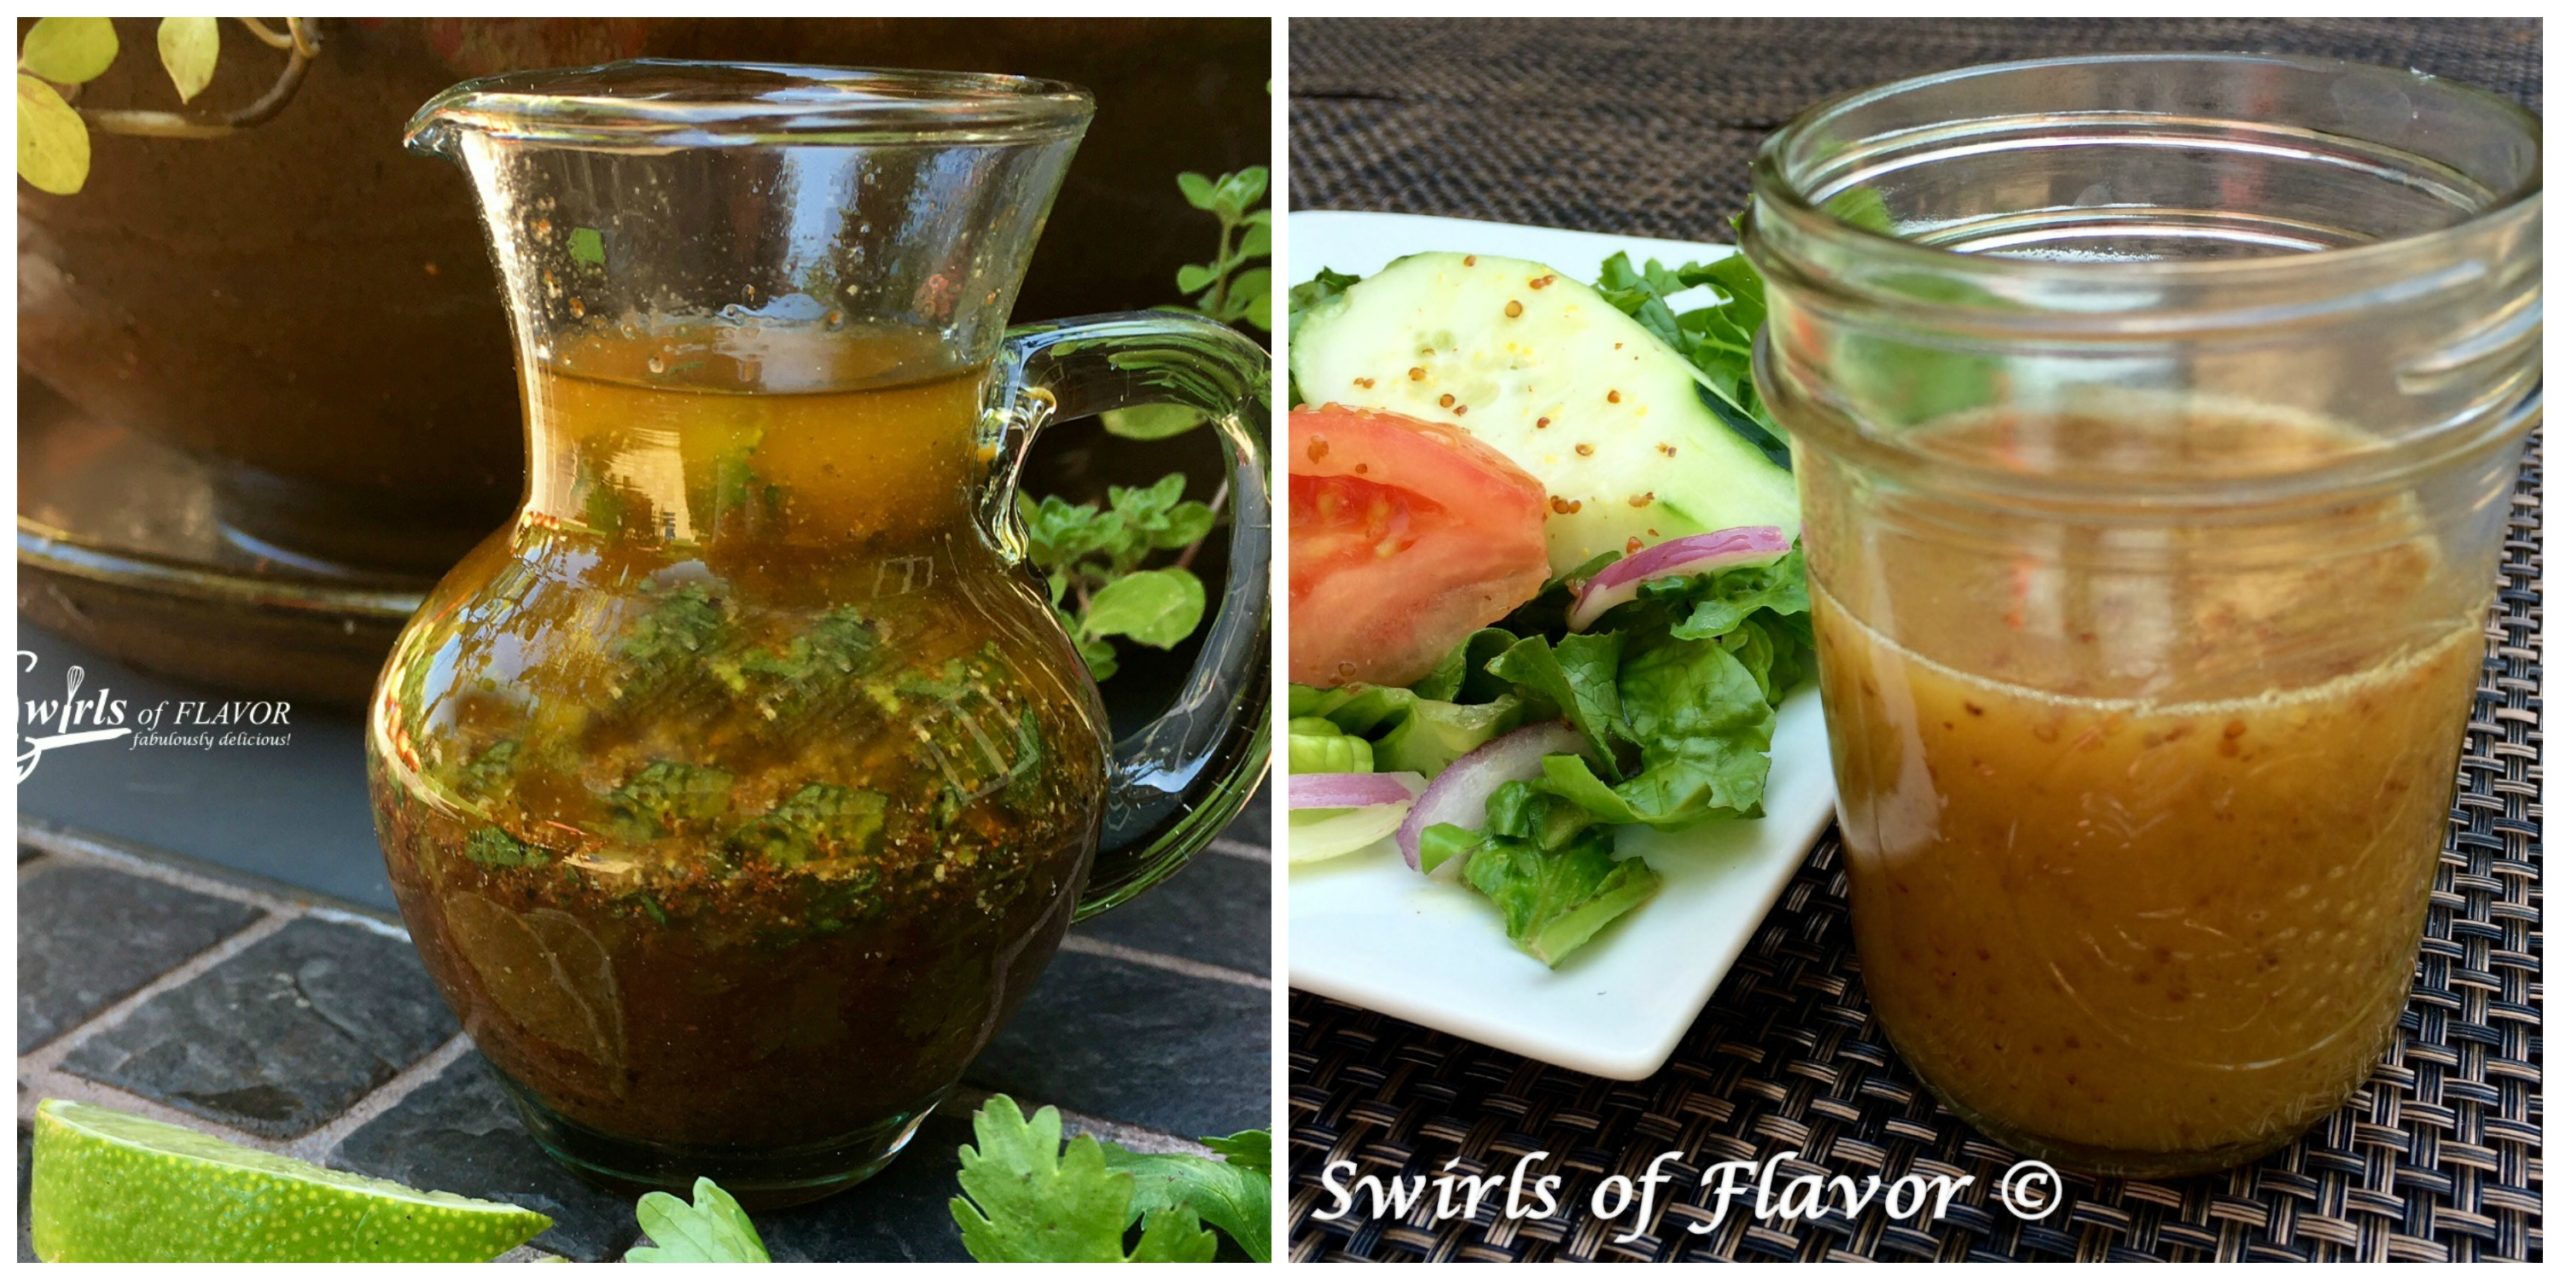 Chili Lime Vinaigrette and Honey Mustard Salad Dressing